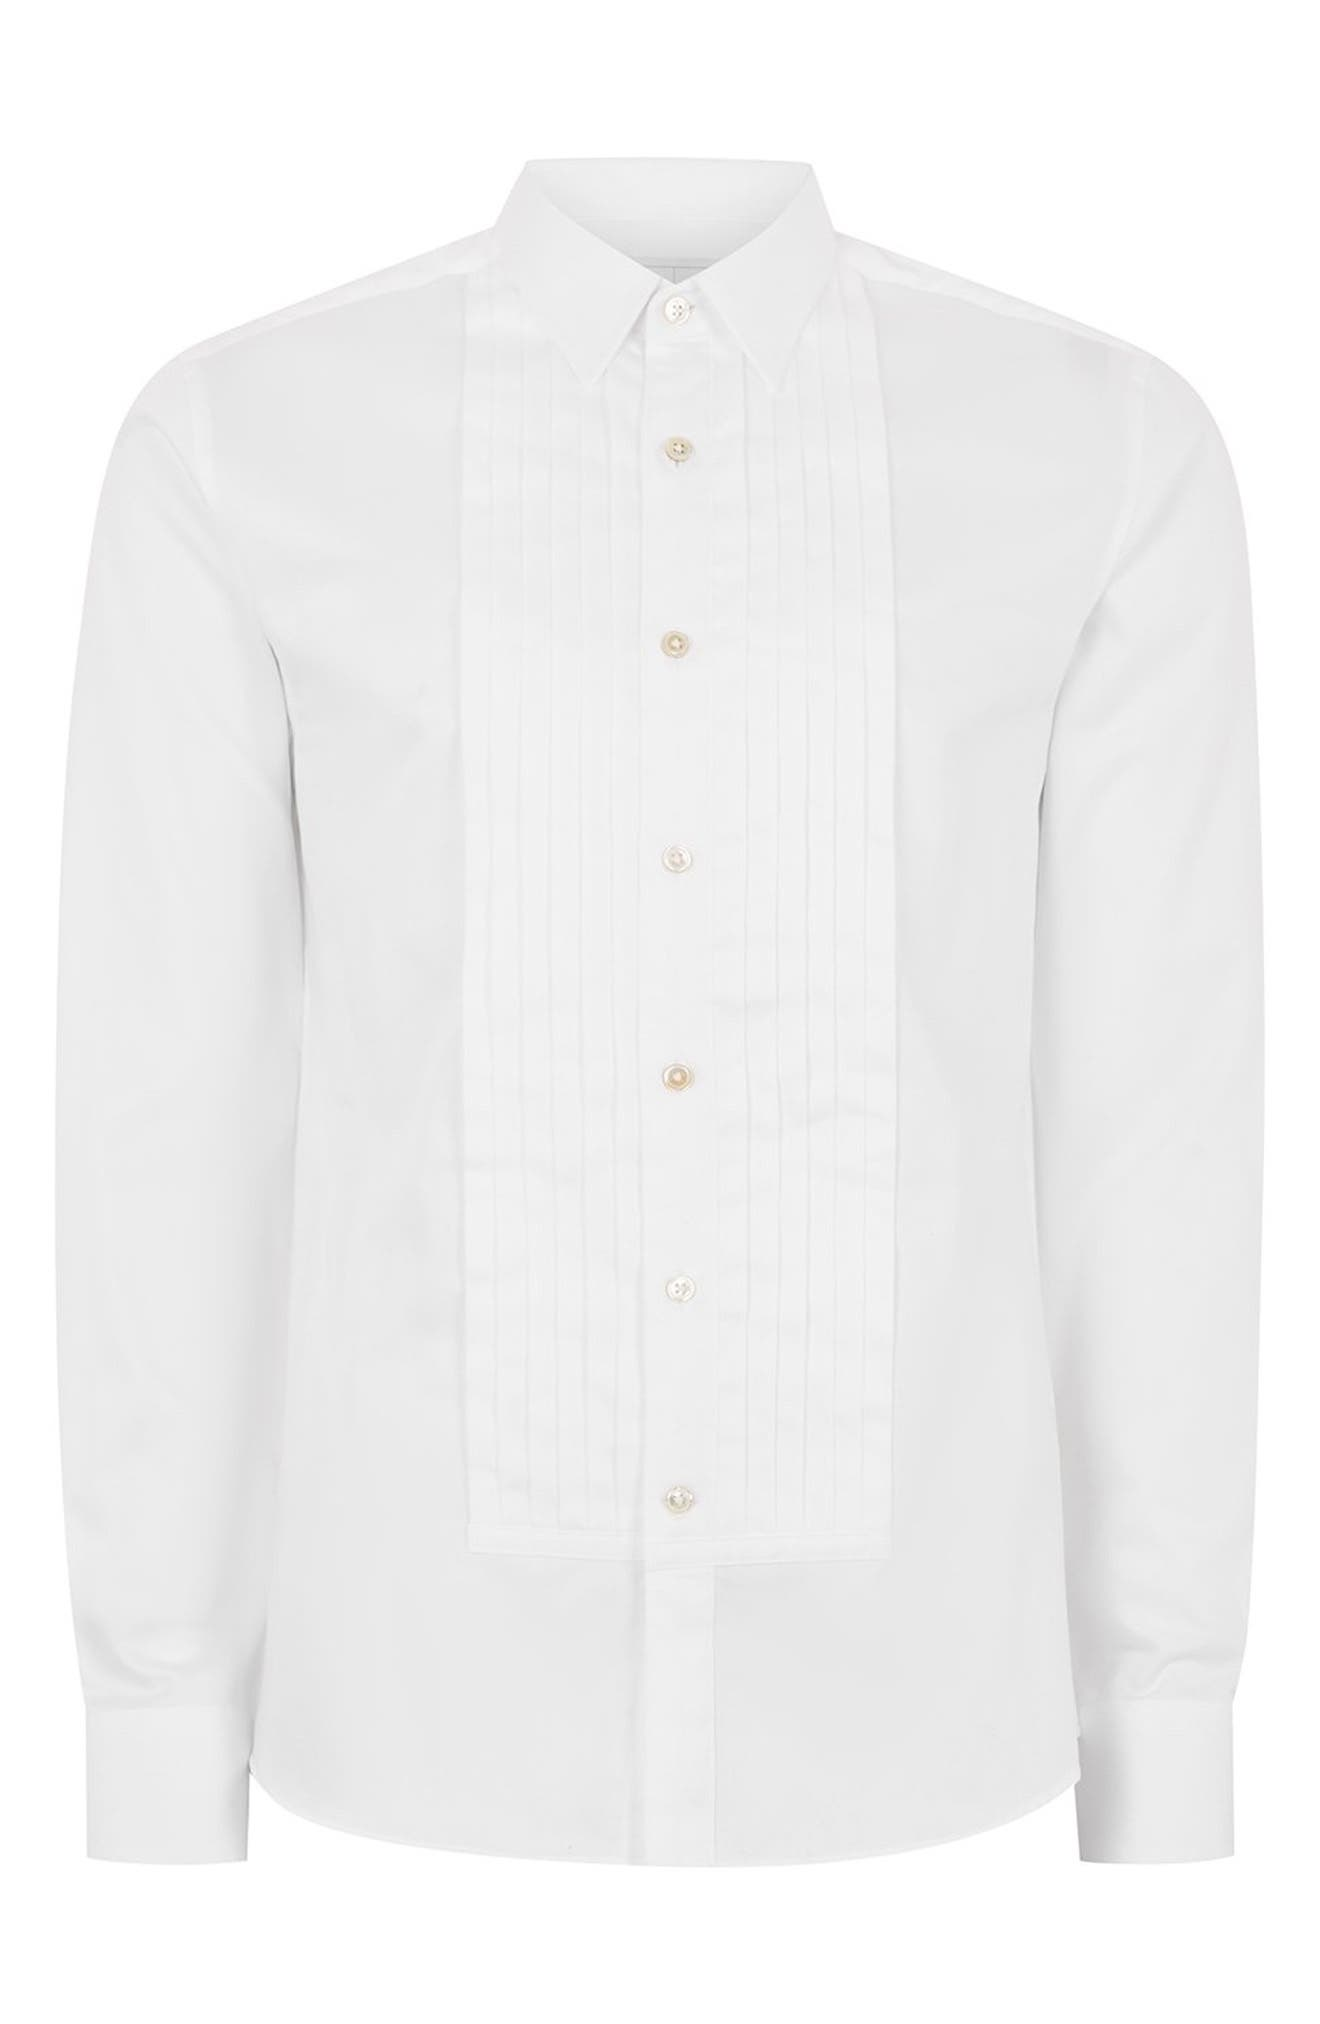 Pleated Tuxedo Shirt,                             Alternate thumbnail 4, color,                             WHITE